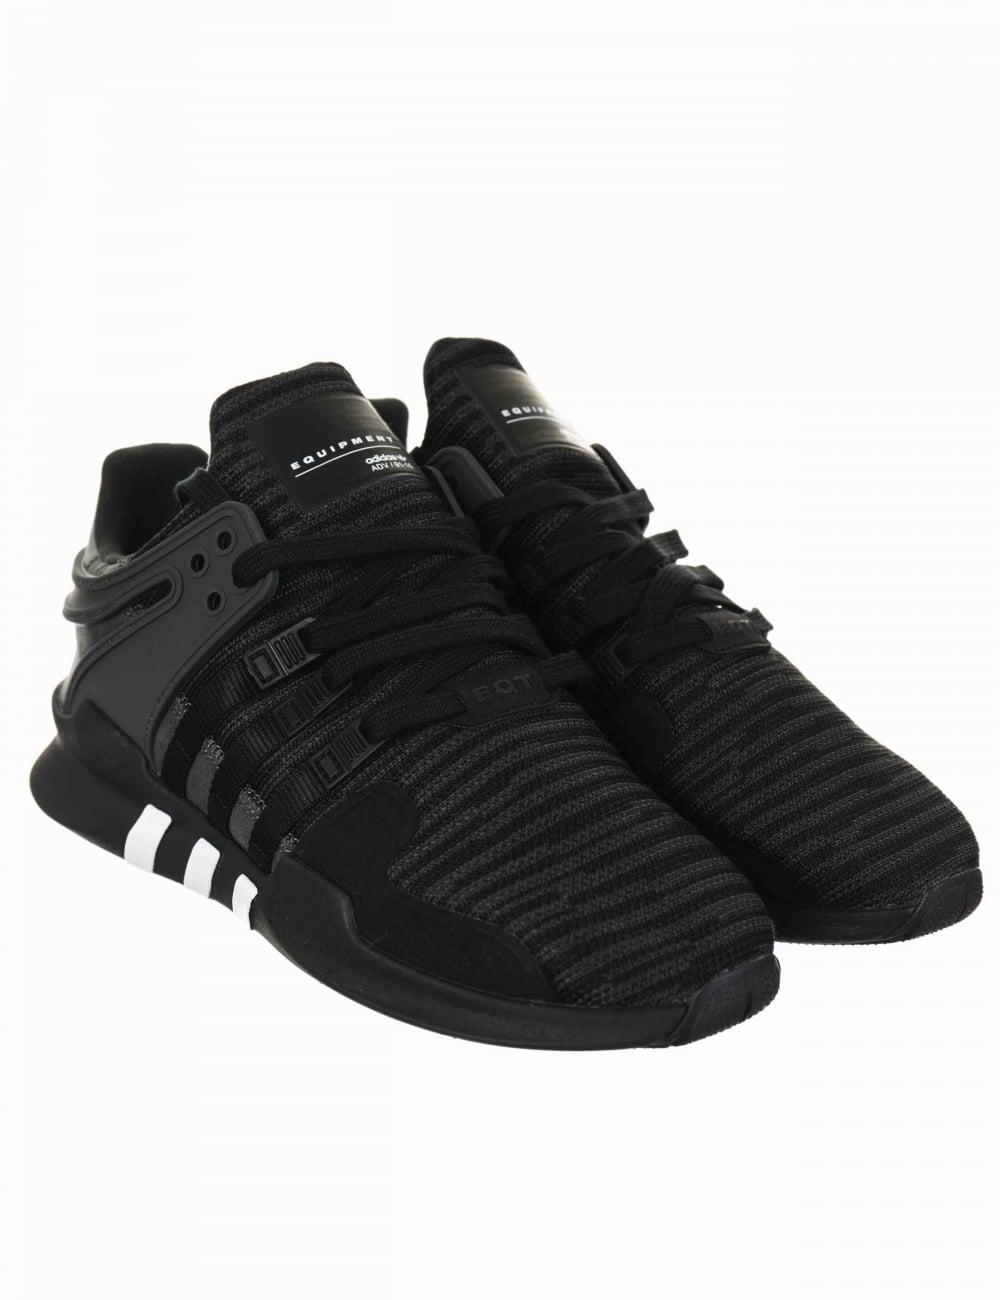 huge discount 93dba 18ea1 EQT Support Advance Shoes - Core Black/Utility Black (BB1297)